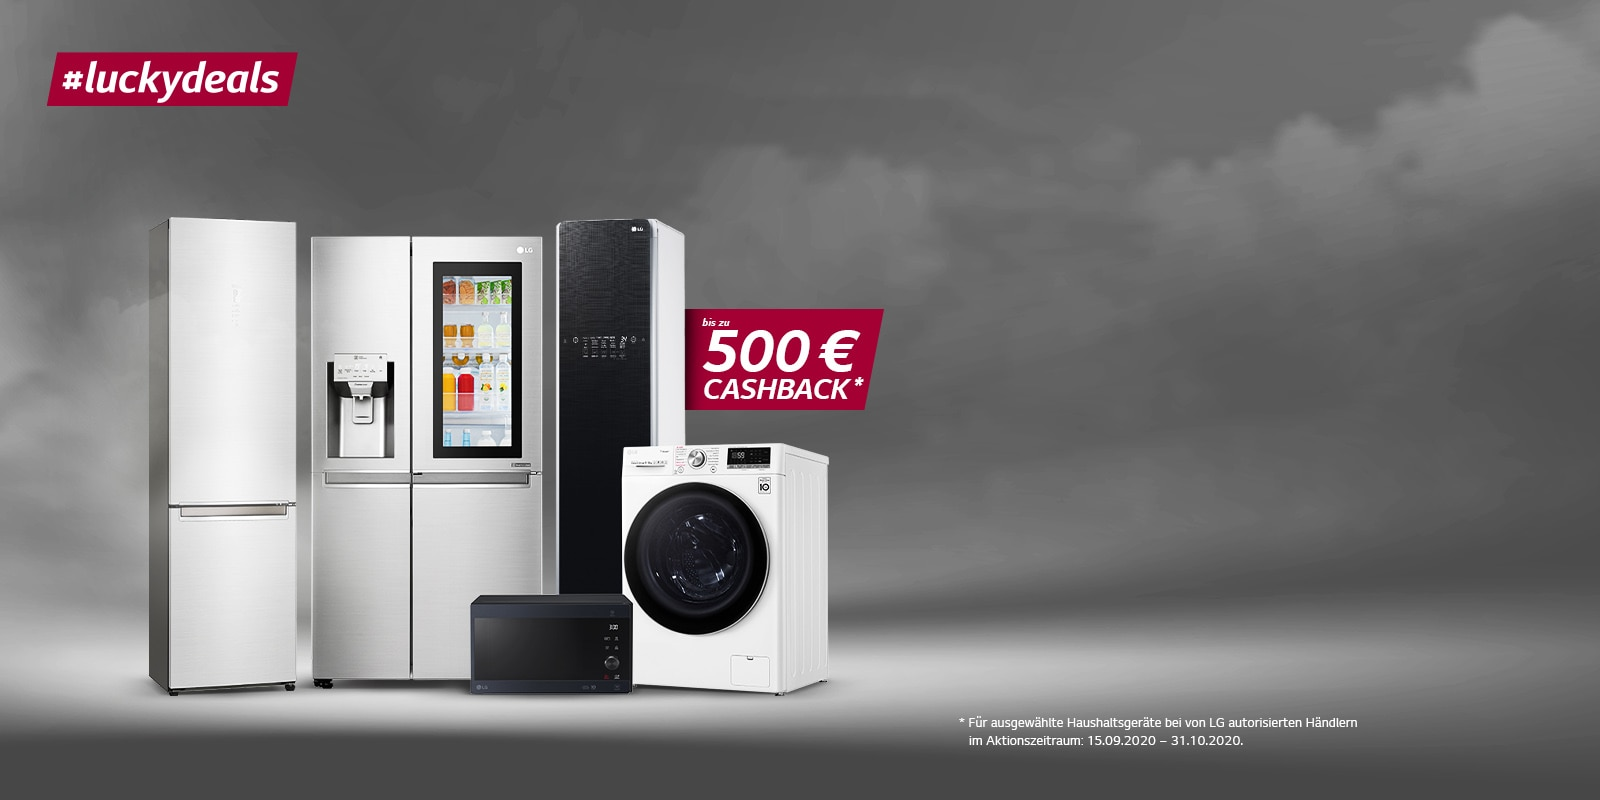 LG Luckydeals Promotion